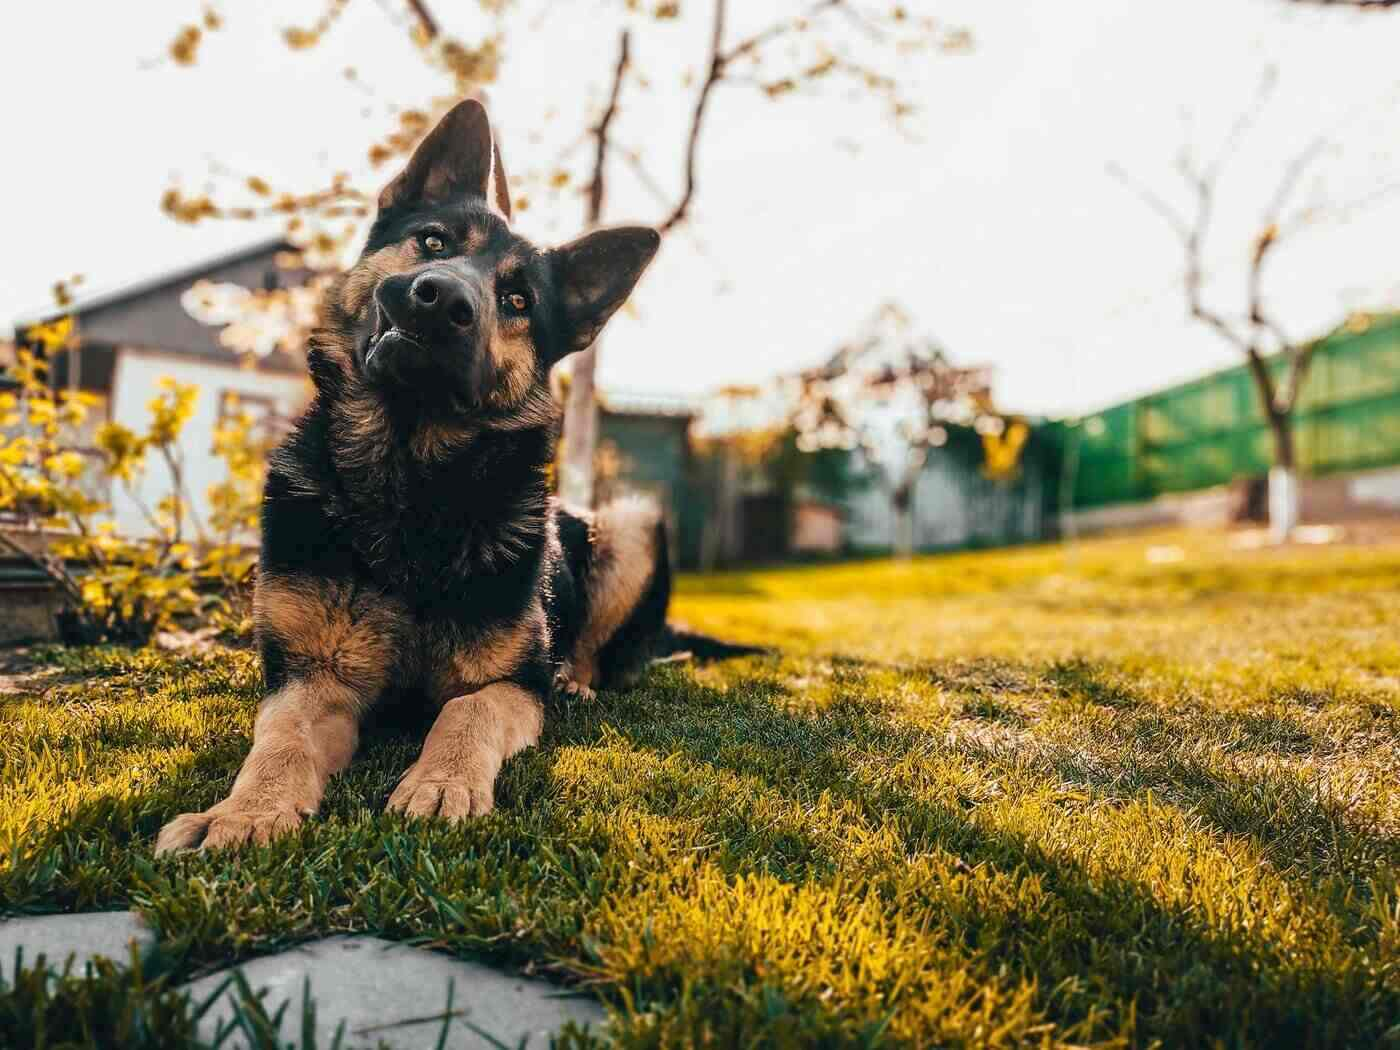 german shepherd lying on grass - how to choose the right dog breed for your family farm